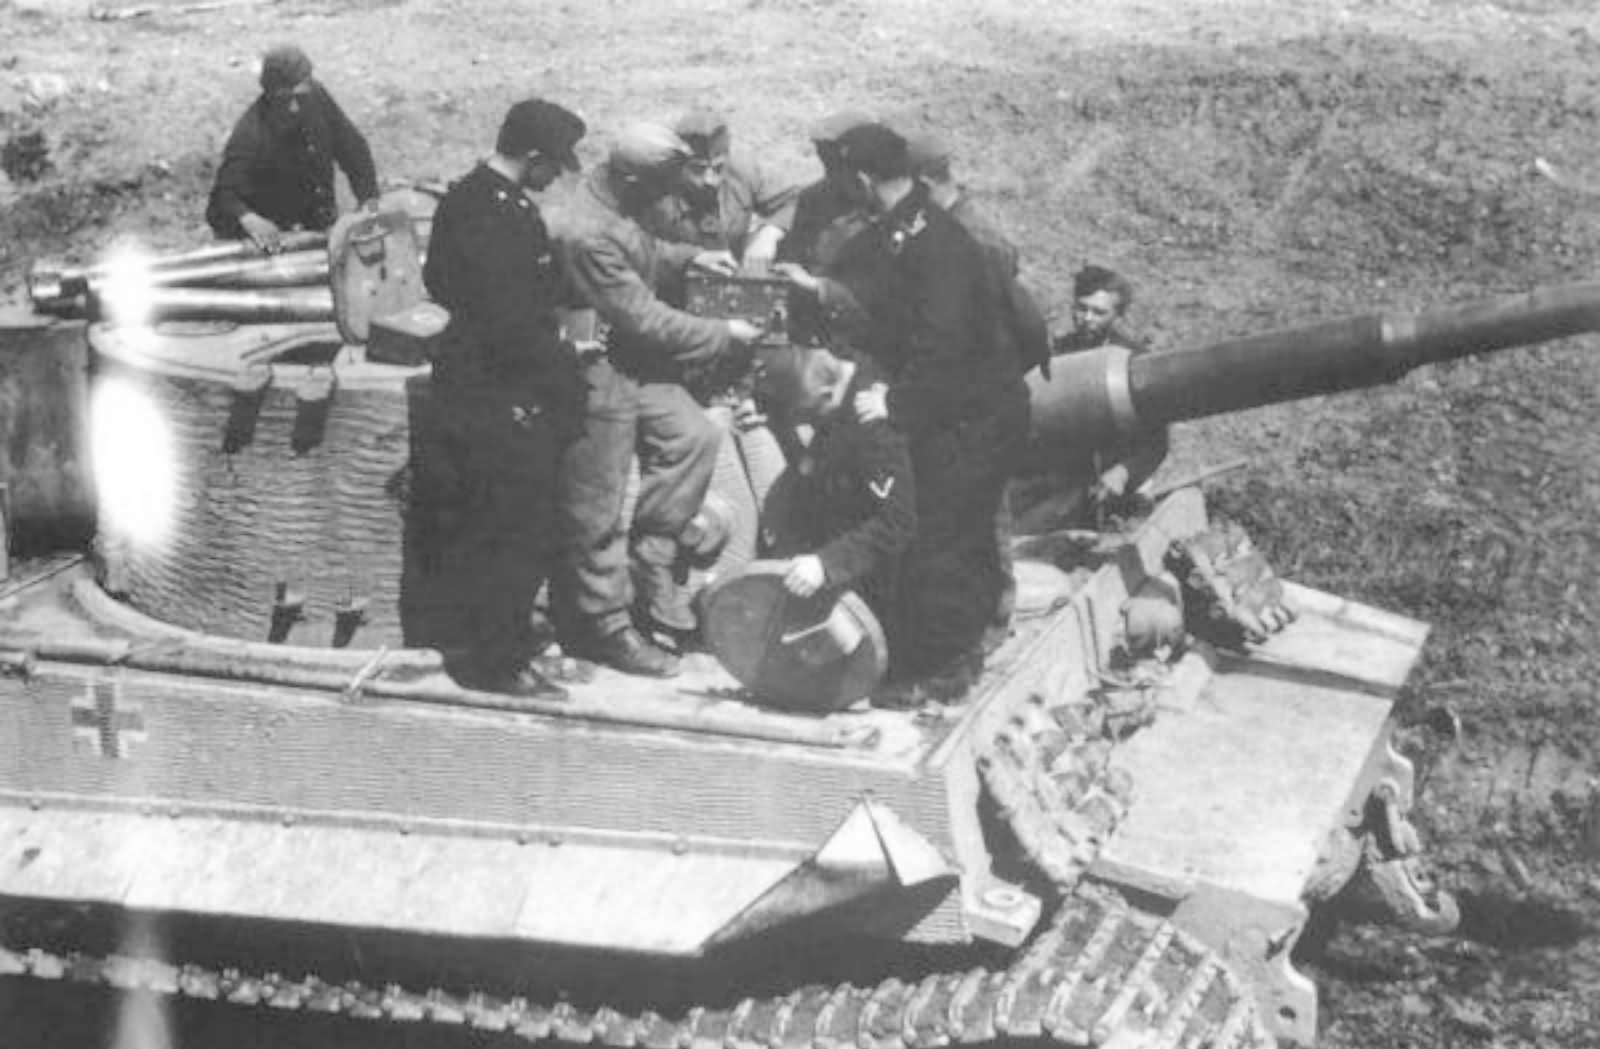 Tiger I with zimmerit